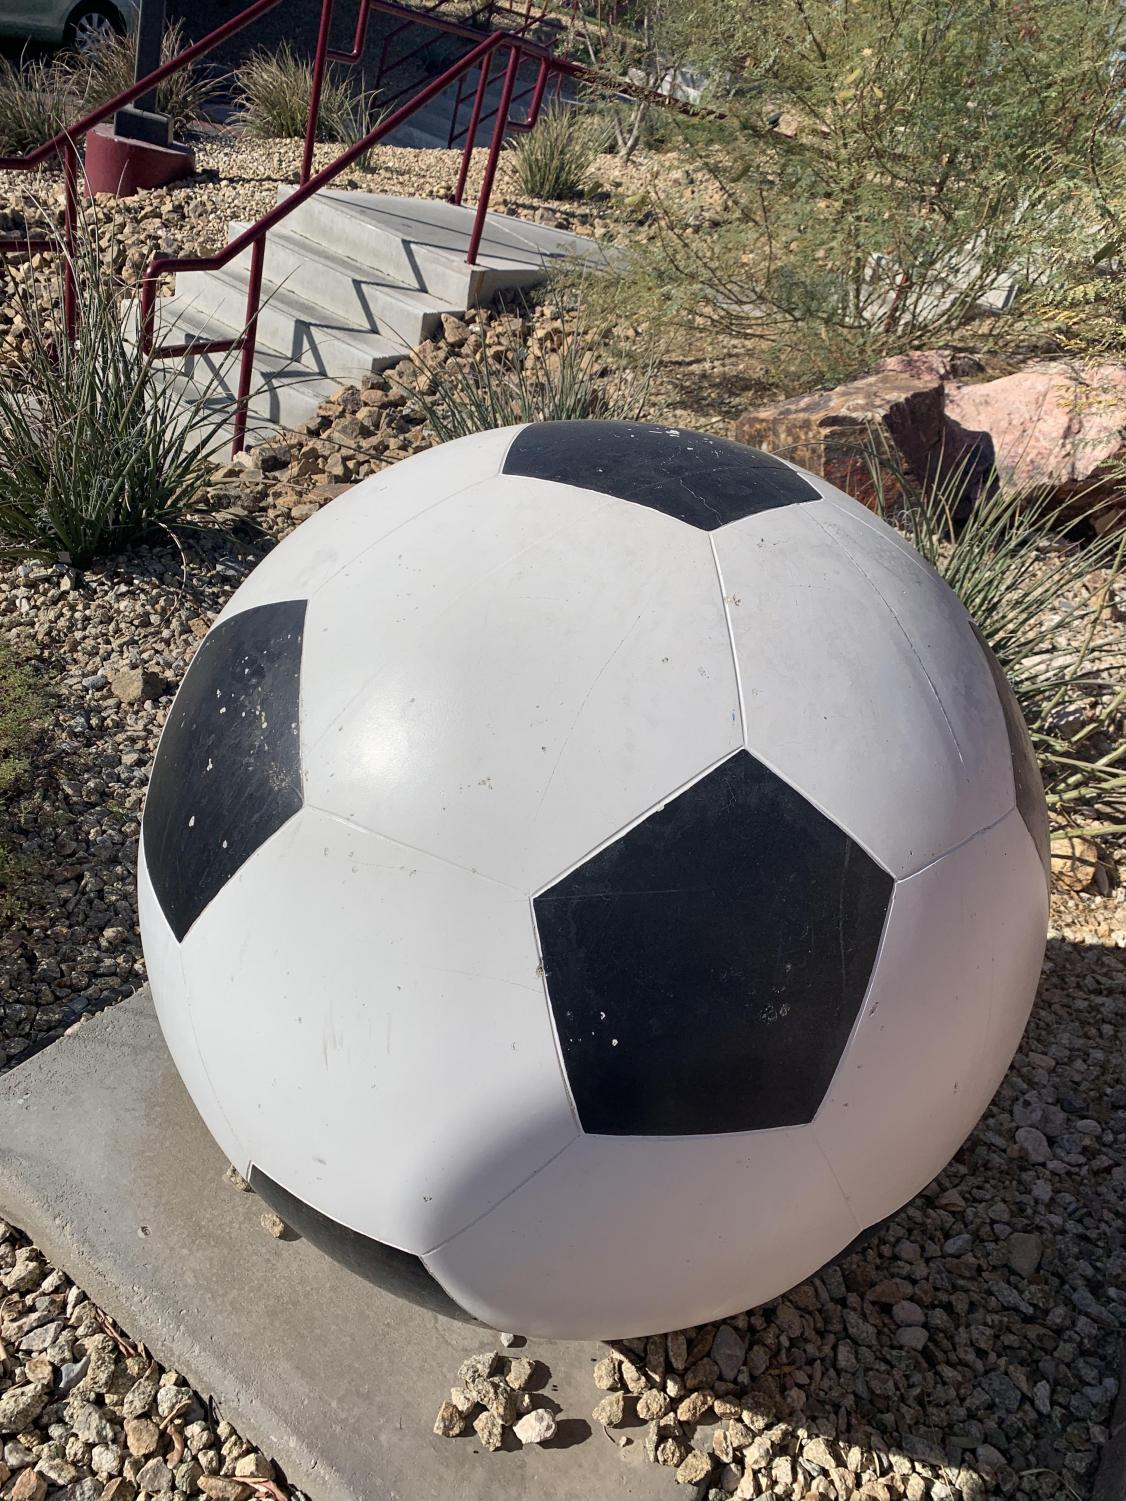 Soccer ball right outside the soccer field!